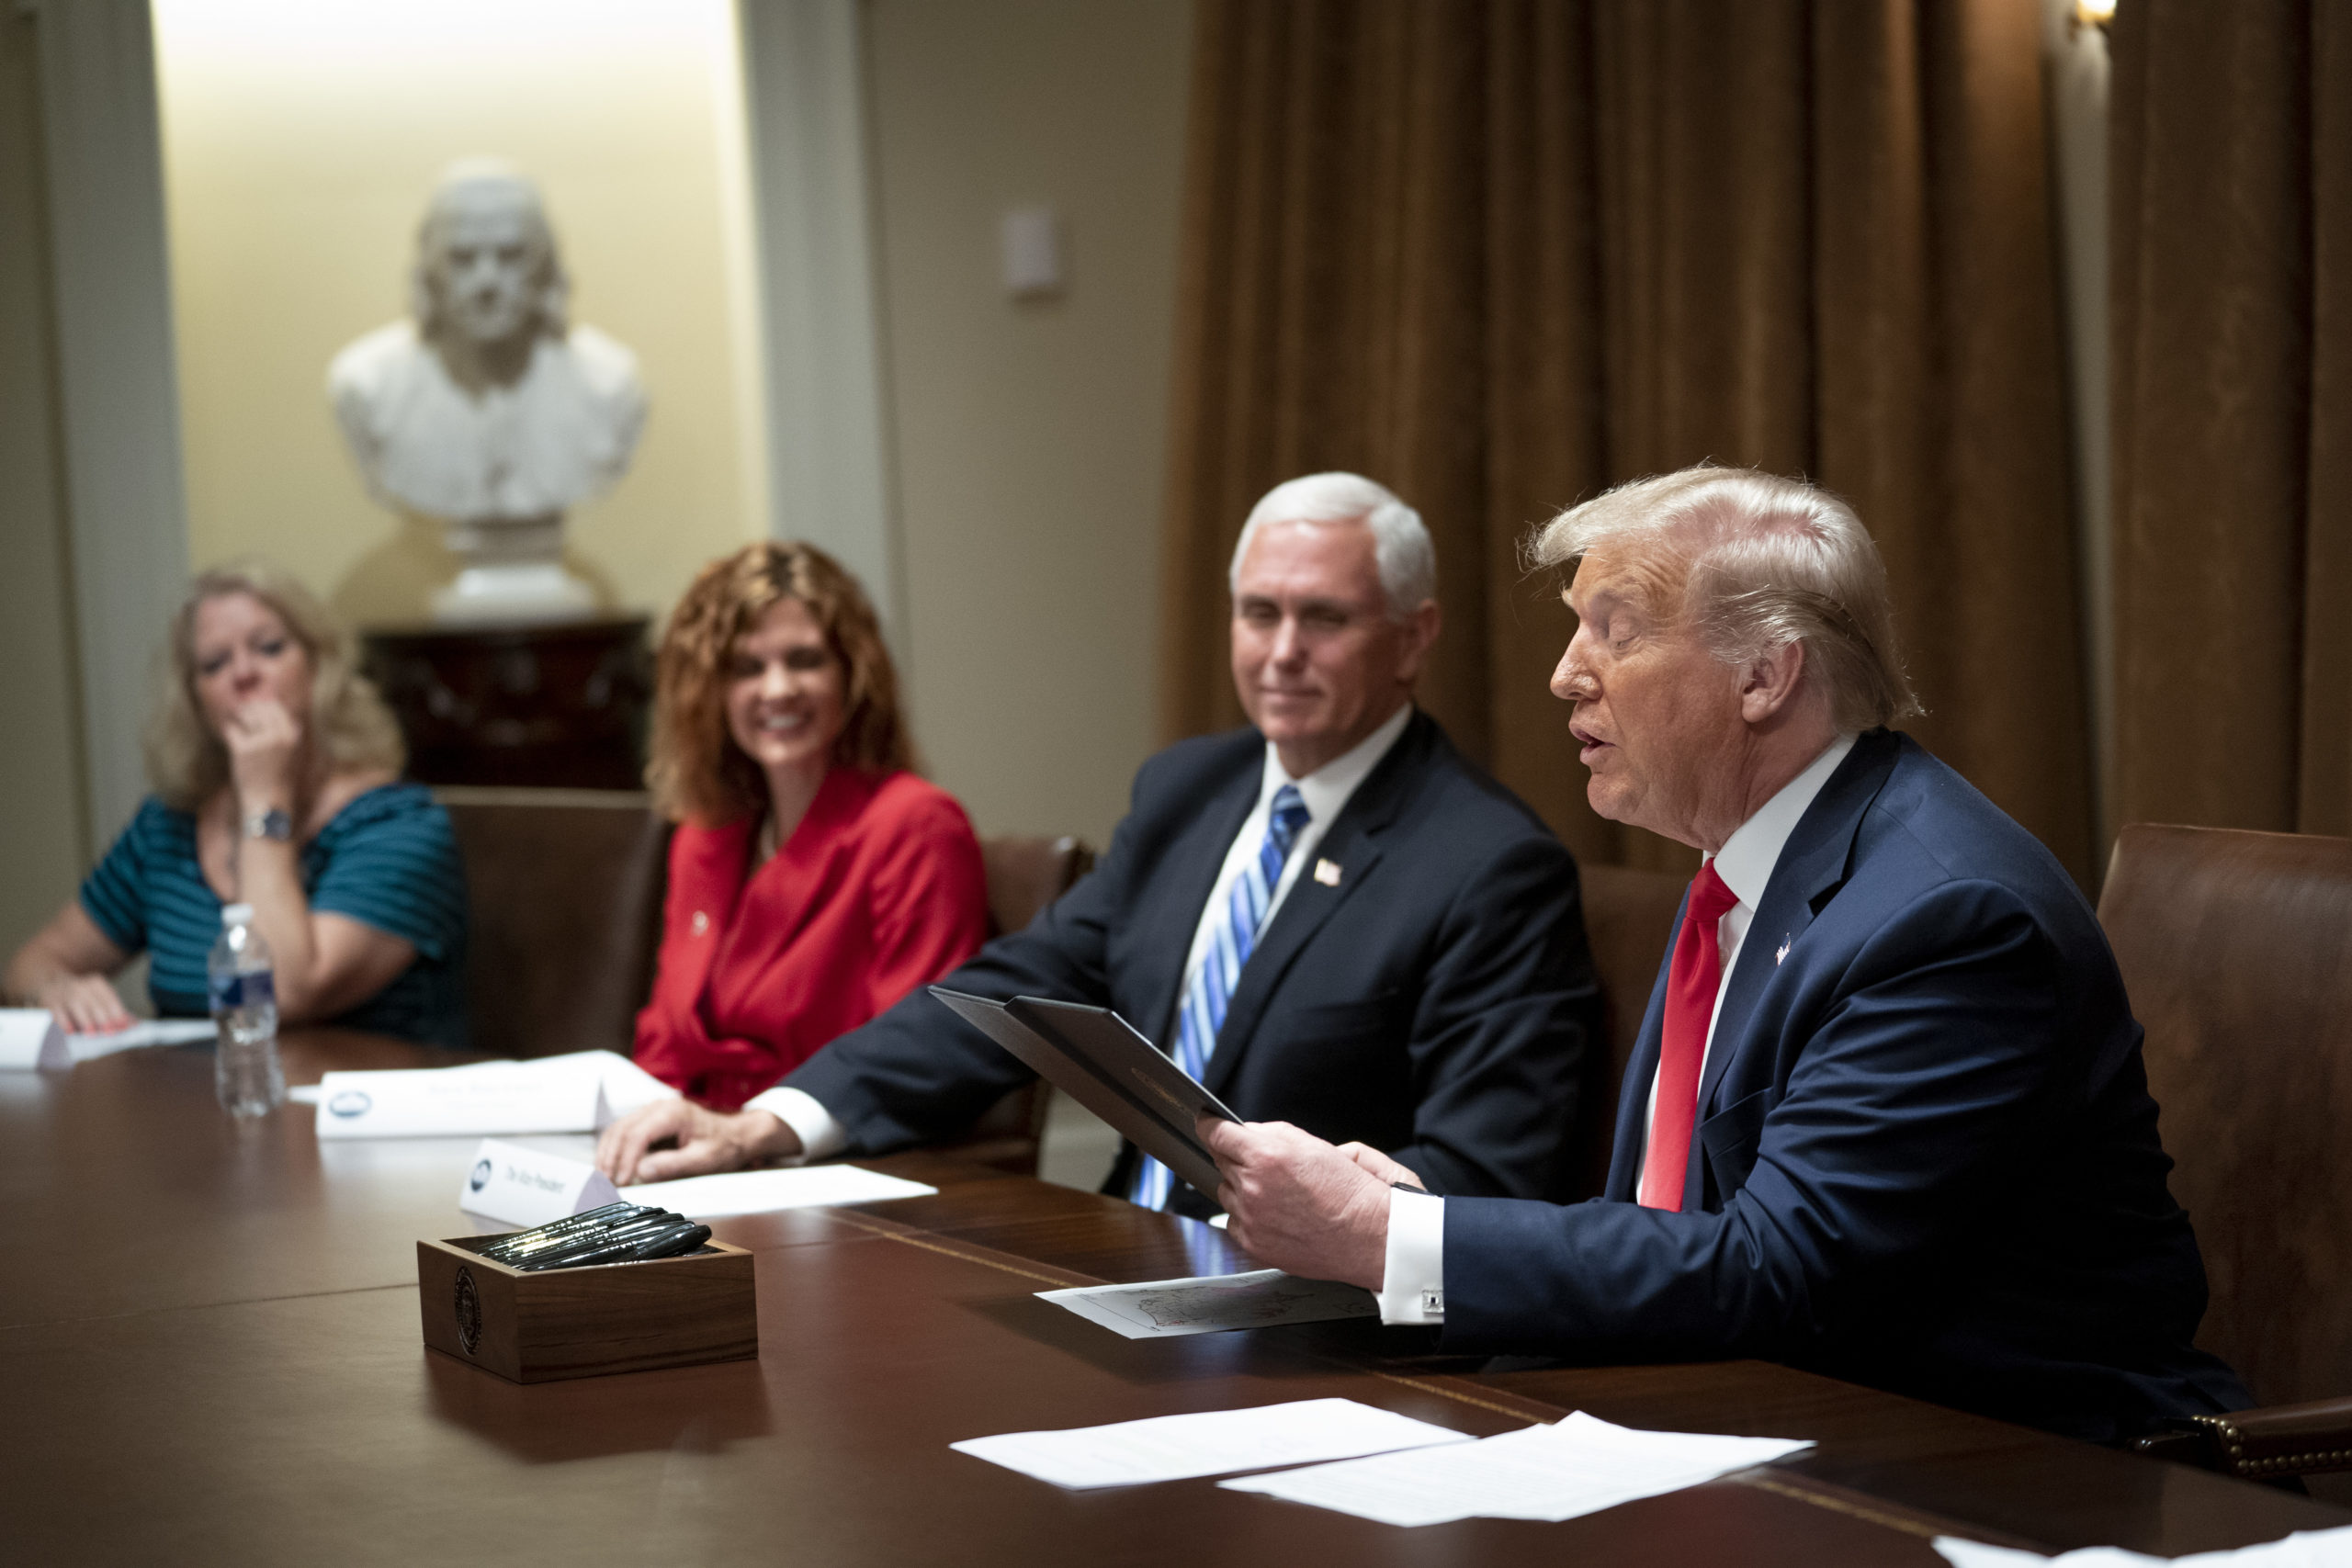 President Donald Trump makes remarks as he meets with U.S. Tech Workers and signs an Executive Order on Hiring Americans, in the White House on Aug. 3. (Doug Mills/Pool/Getty Images)